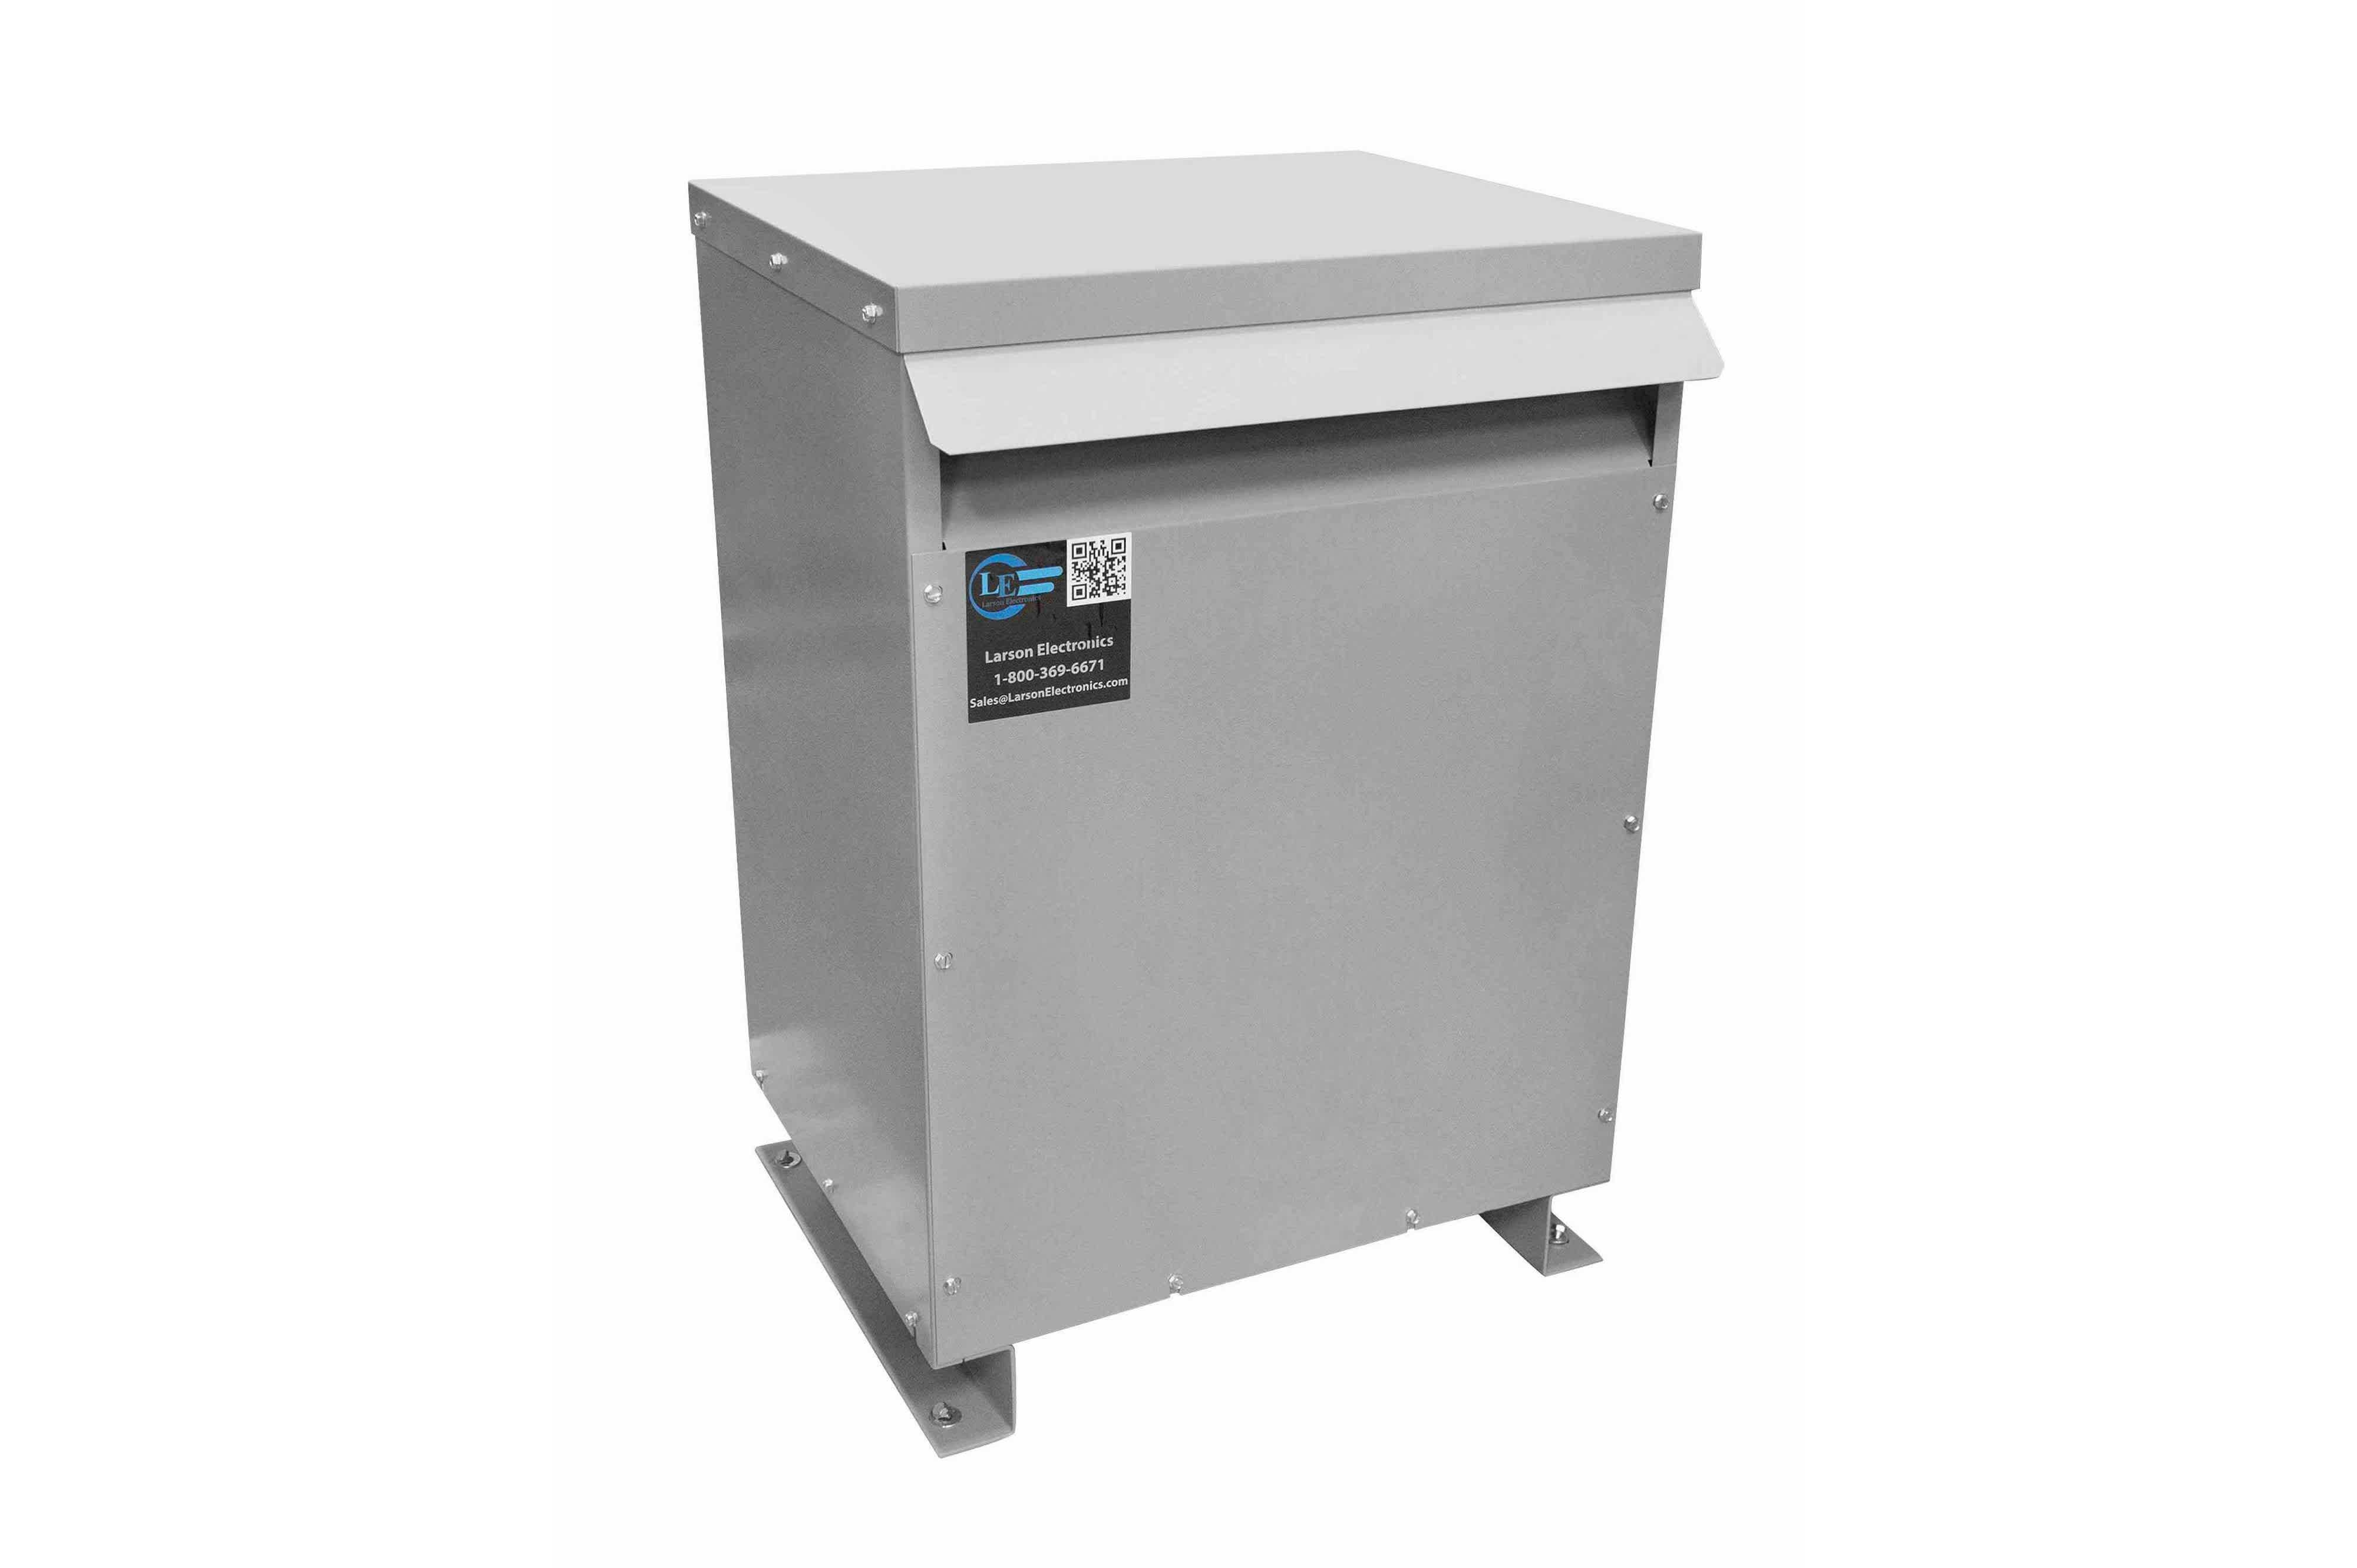 137.5 kVA 3PH Isolation Transformer, 440V Wye Primary, 208V Delta Secondary, N3R, Ventilated, 60 Hz